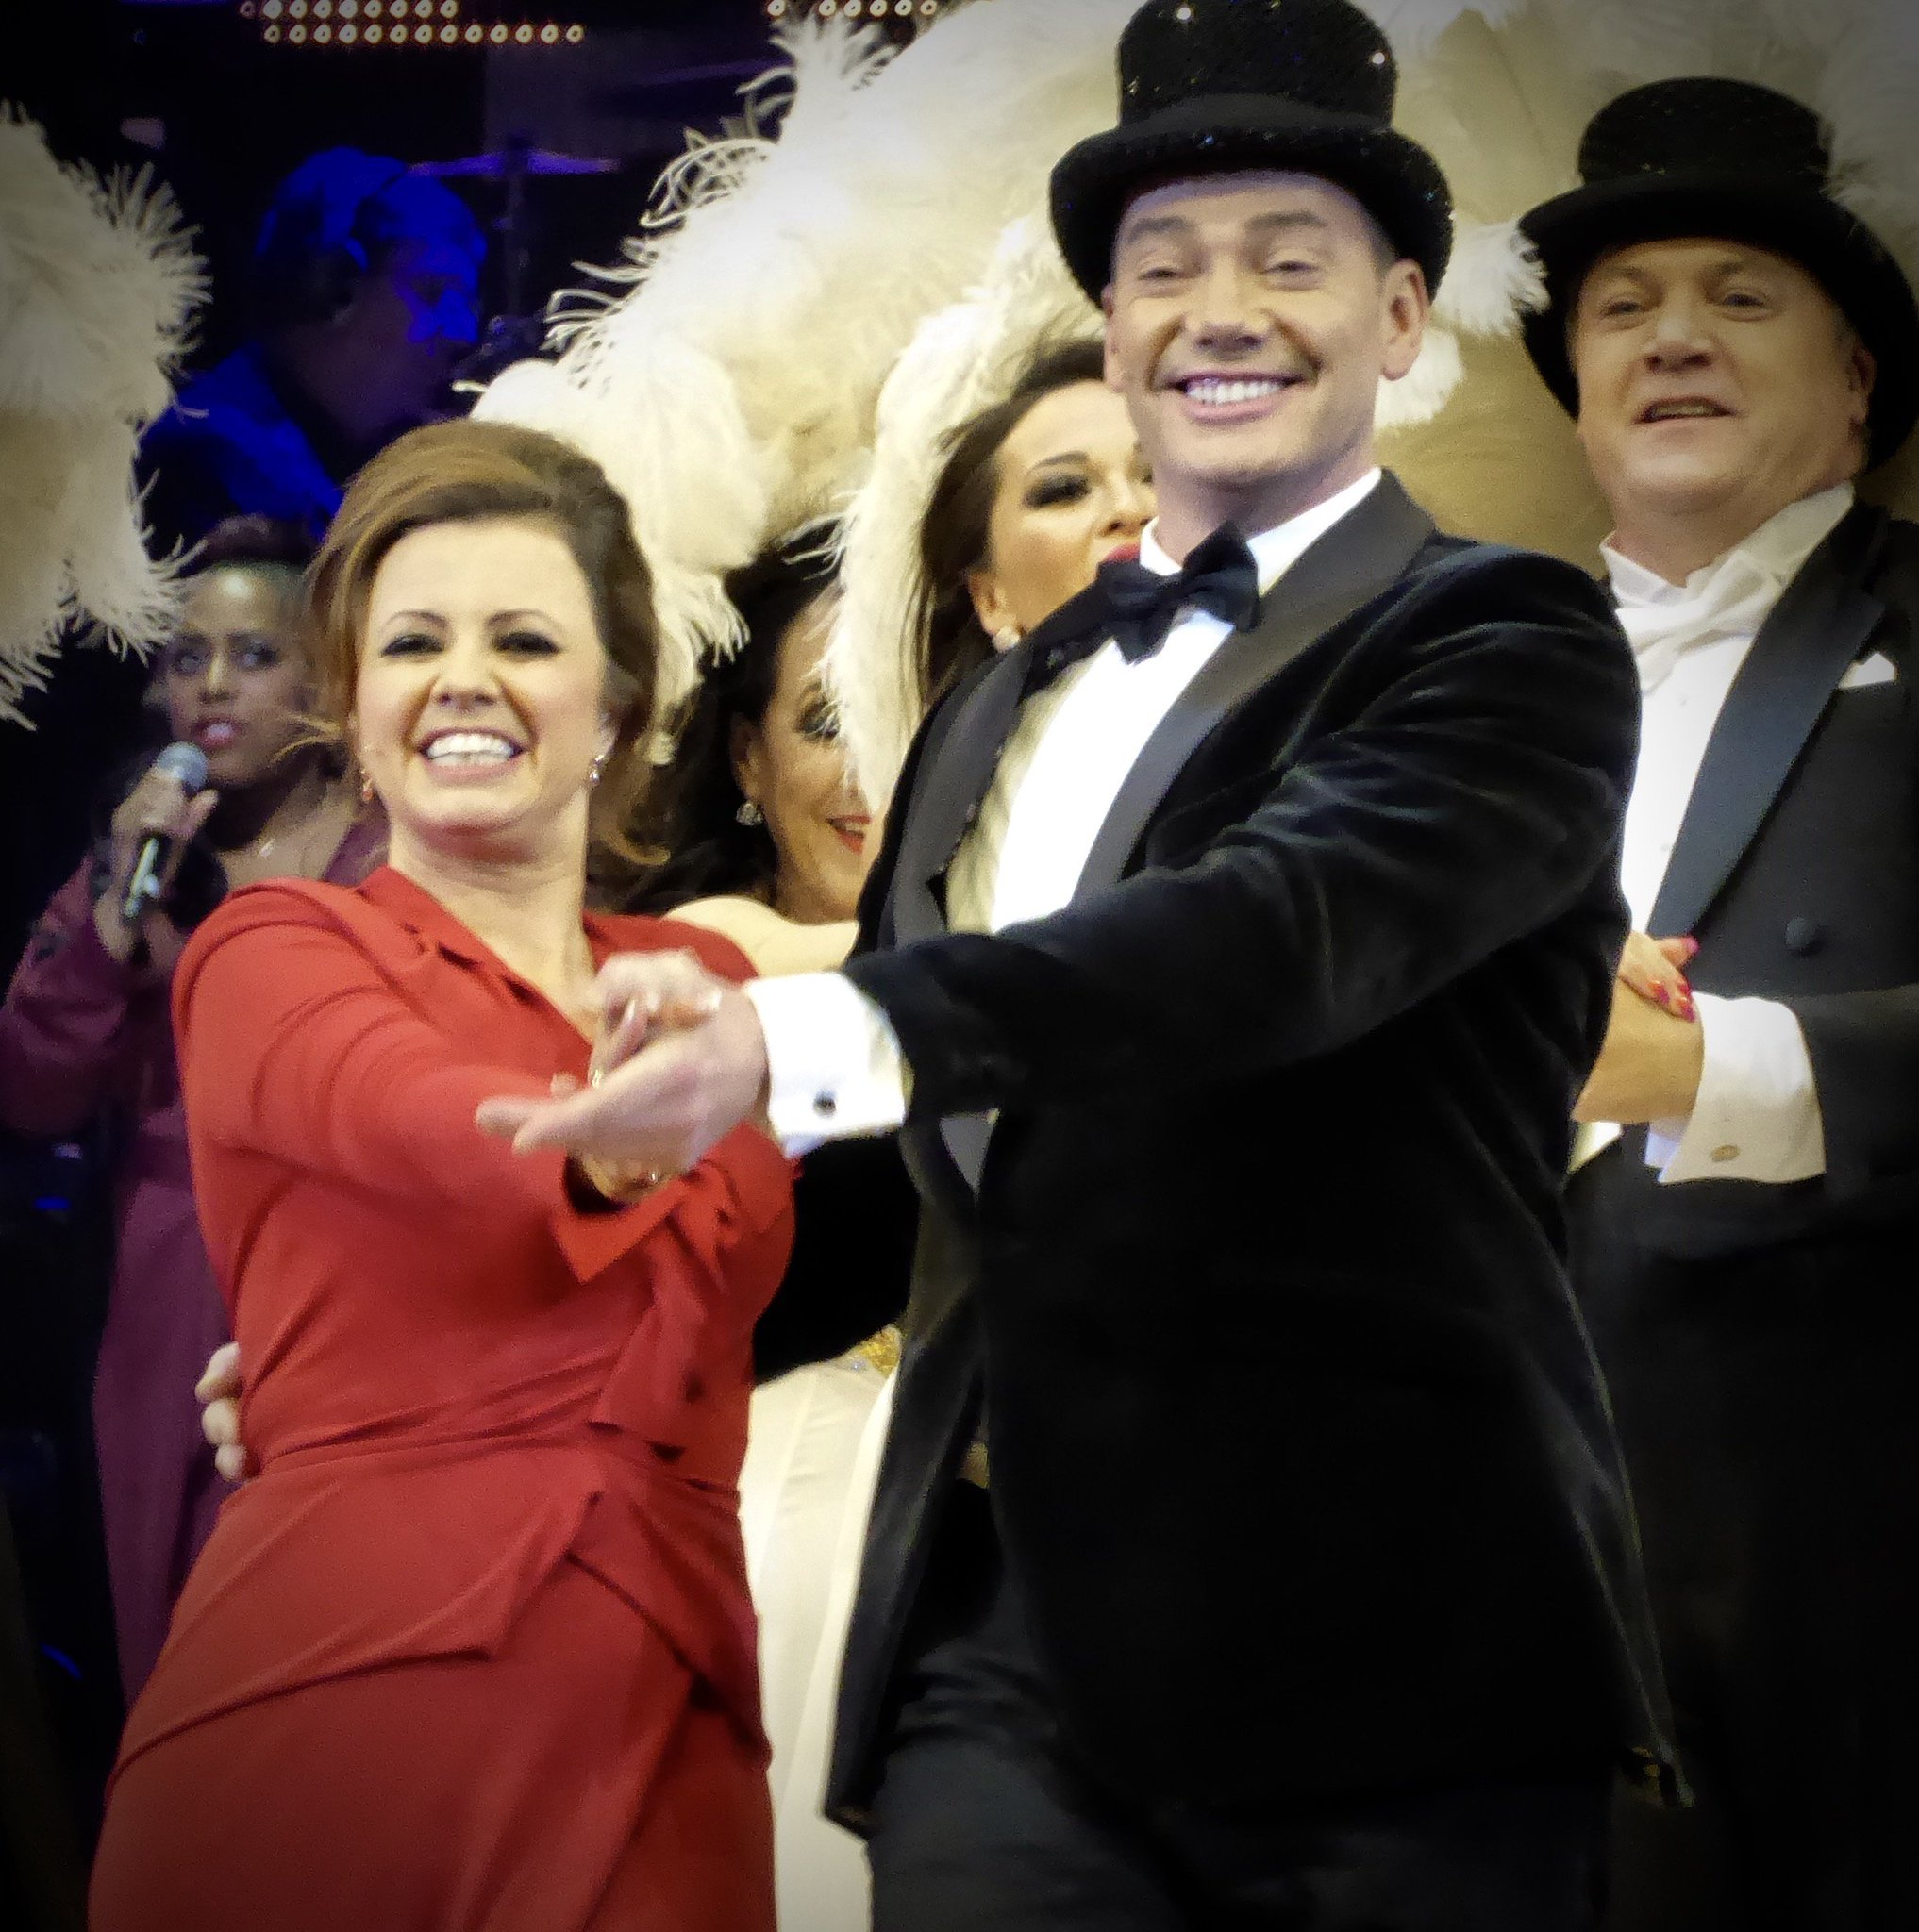 RT @Richardbbc: I get the feeling that @the_karenhardy and @CraigRevHorwood are enjoying the Strictly Live Tour https://t.co/WOquWWfCKI